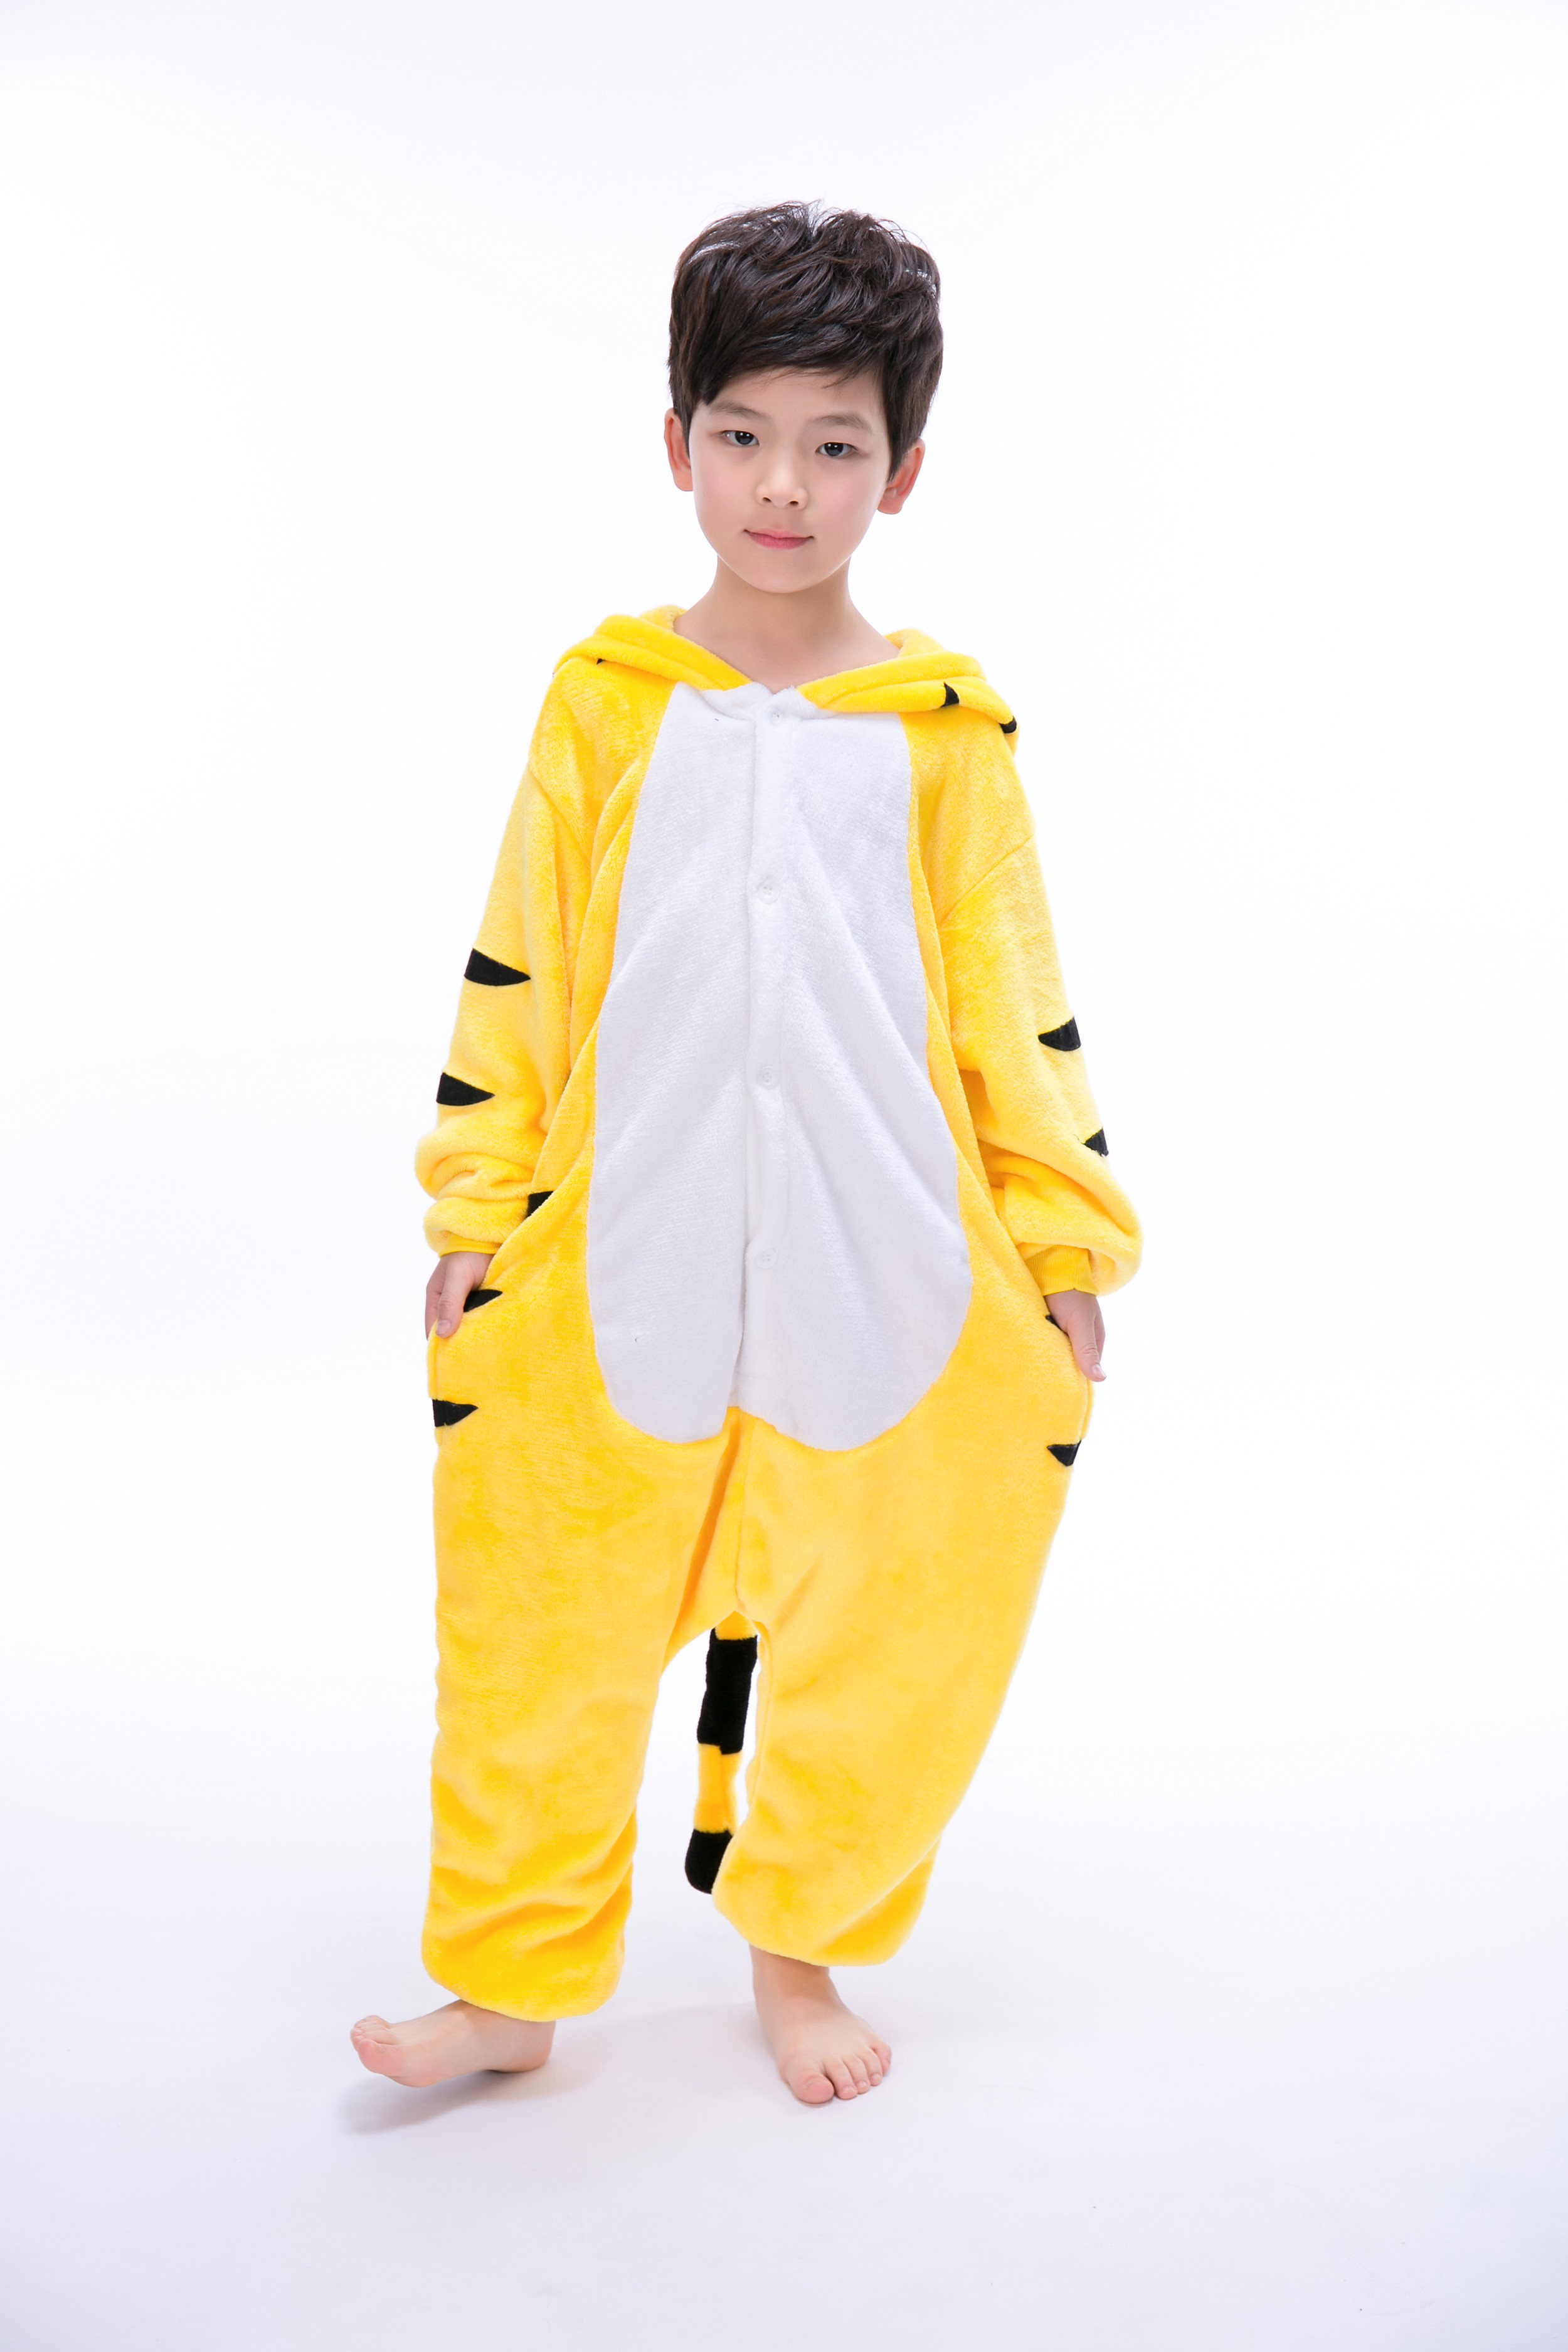 Shop for kids onesie with hood online at Target. Free shipping on purchases over $35 and save 5% every day with your Target REDcard.